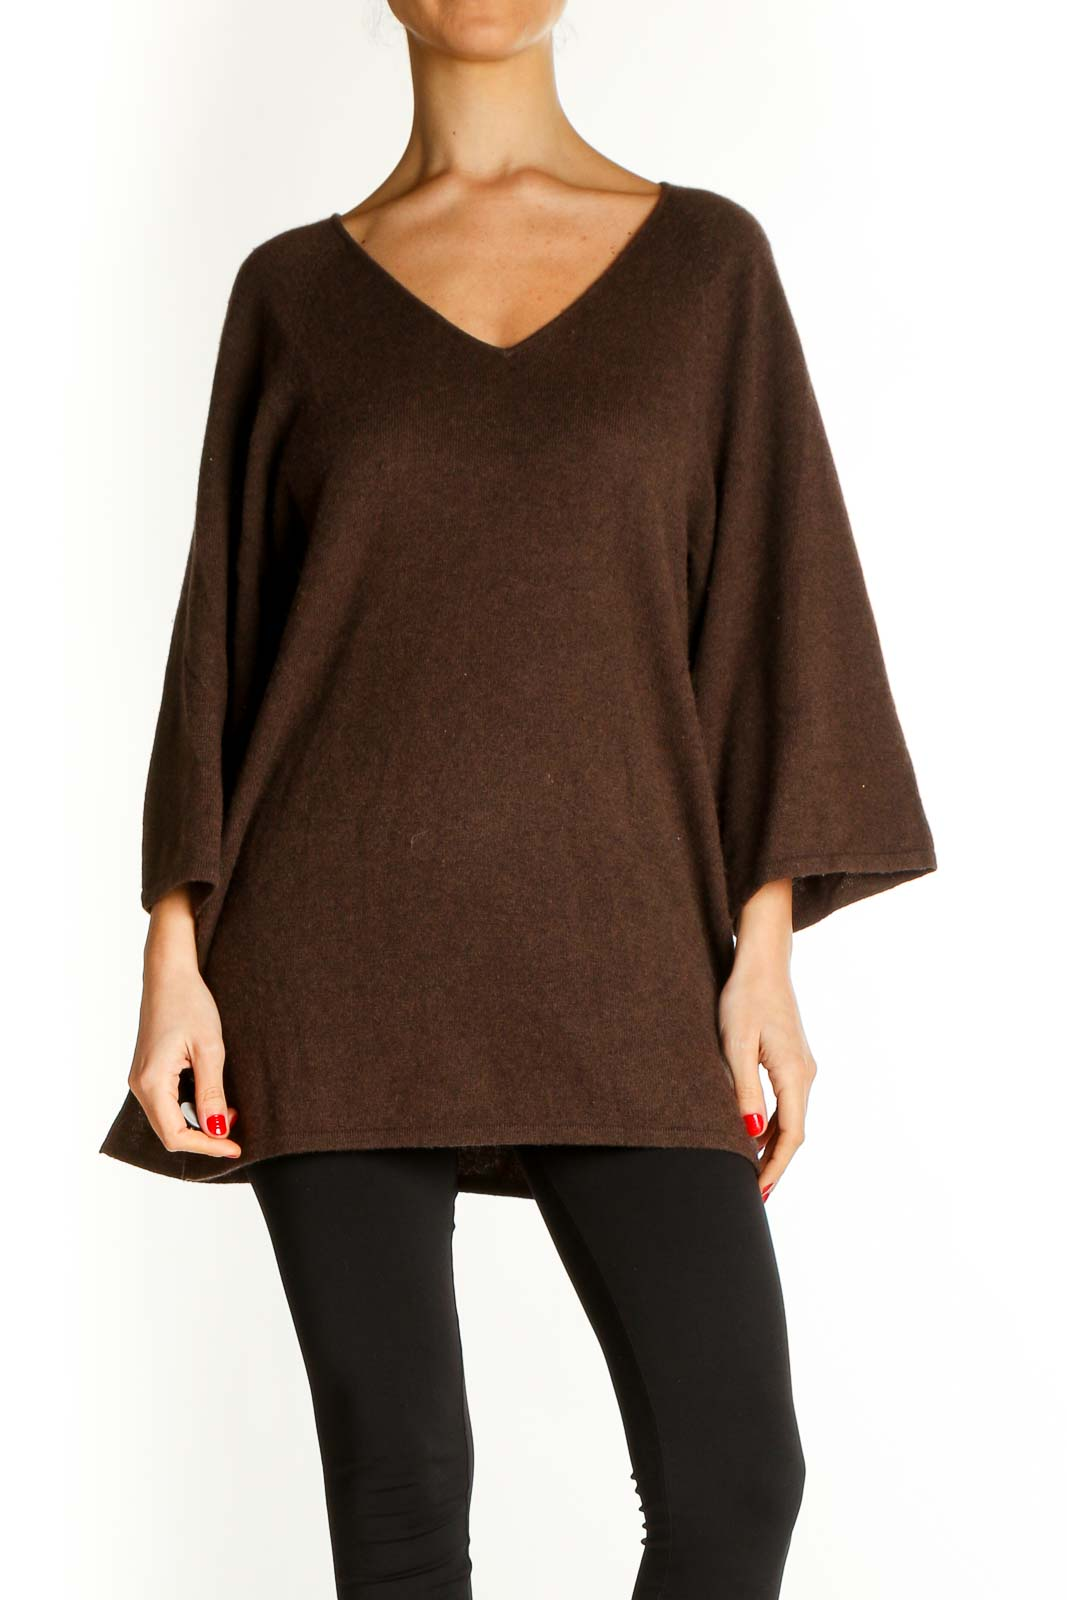 Brown Solid All Day Wear Sweater Front